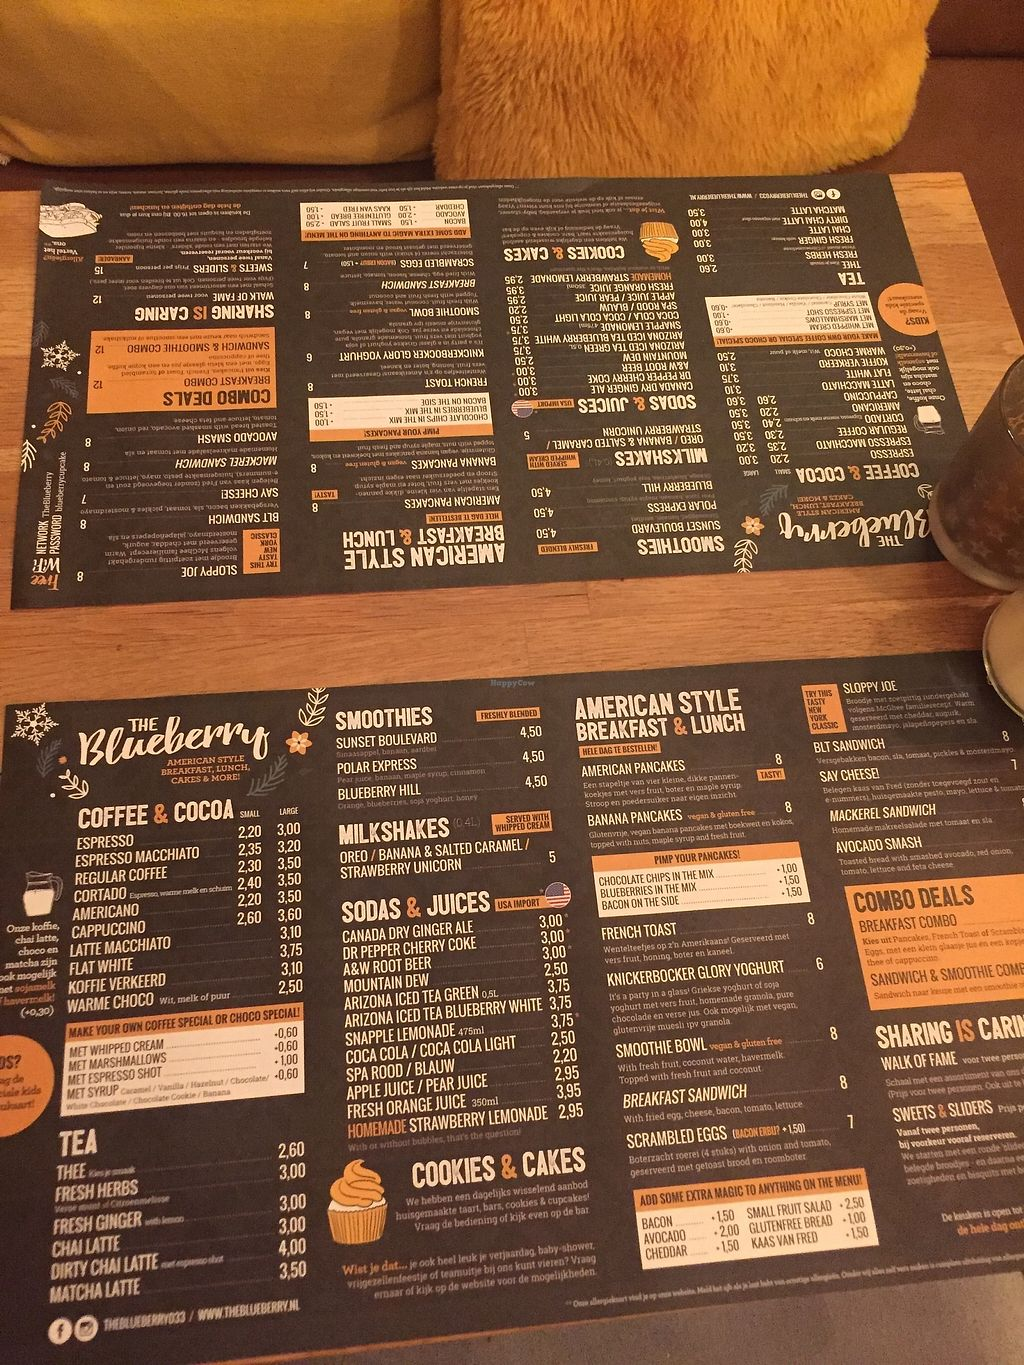 """Photo of The Blueberry  by <a href=""""/members/profile/LisettedeJong"""">LisettedeJong</a> <br/>Menu <br/> November 29, 2017  - <a href='/contact/abuse/image/106223/330630'>Report</a>"""